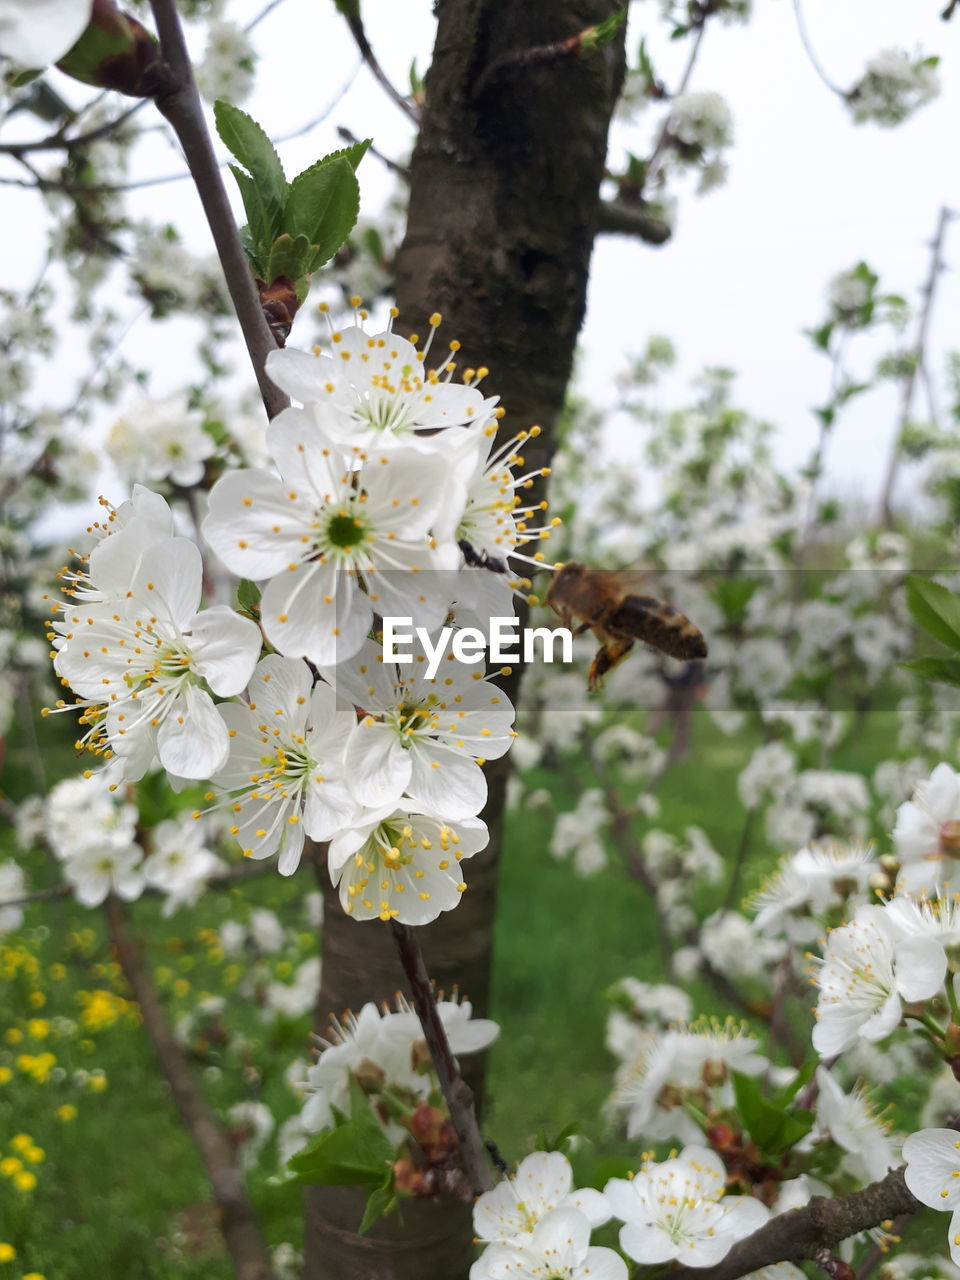 CLOSE-UP OF INSECT ON WHITE FLOWERING TREE